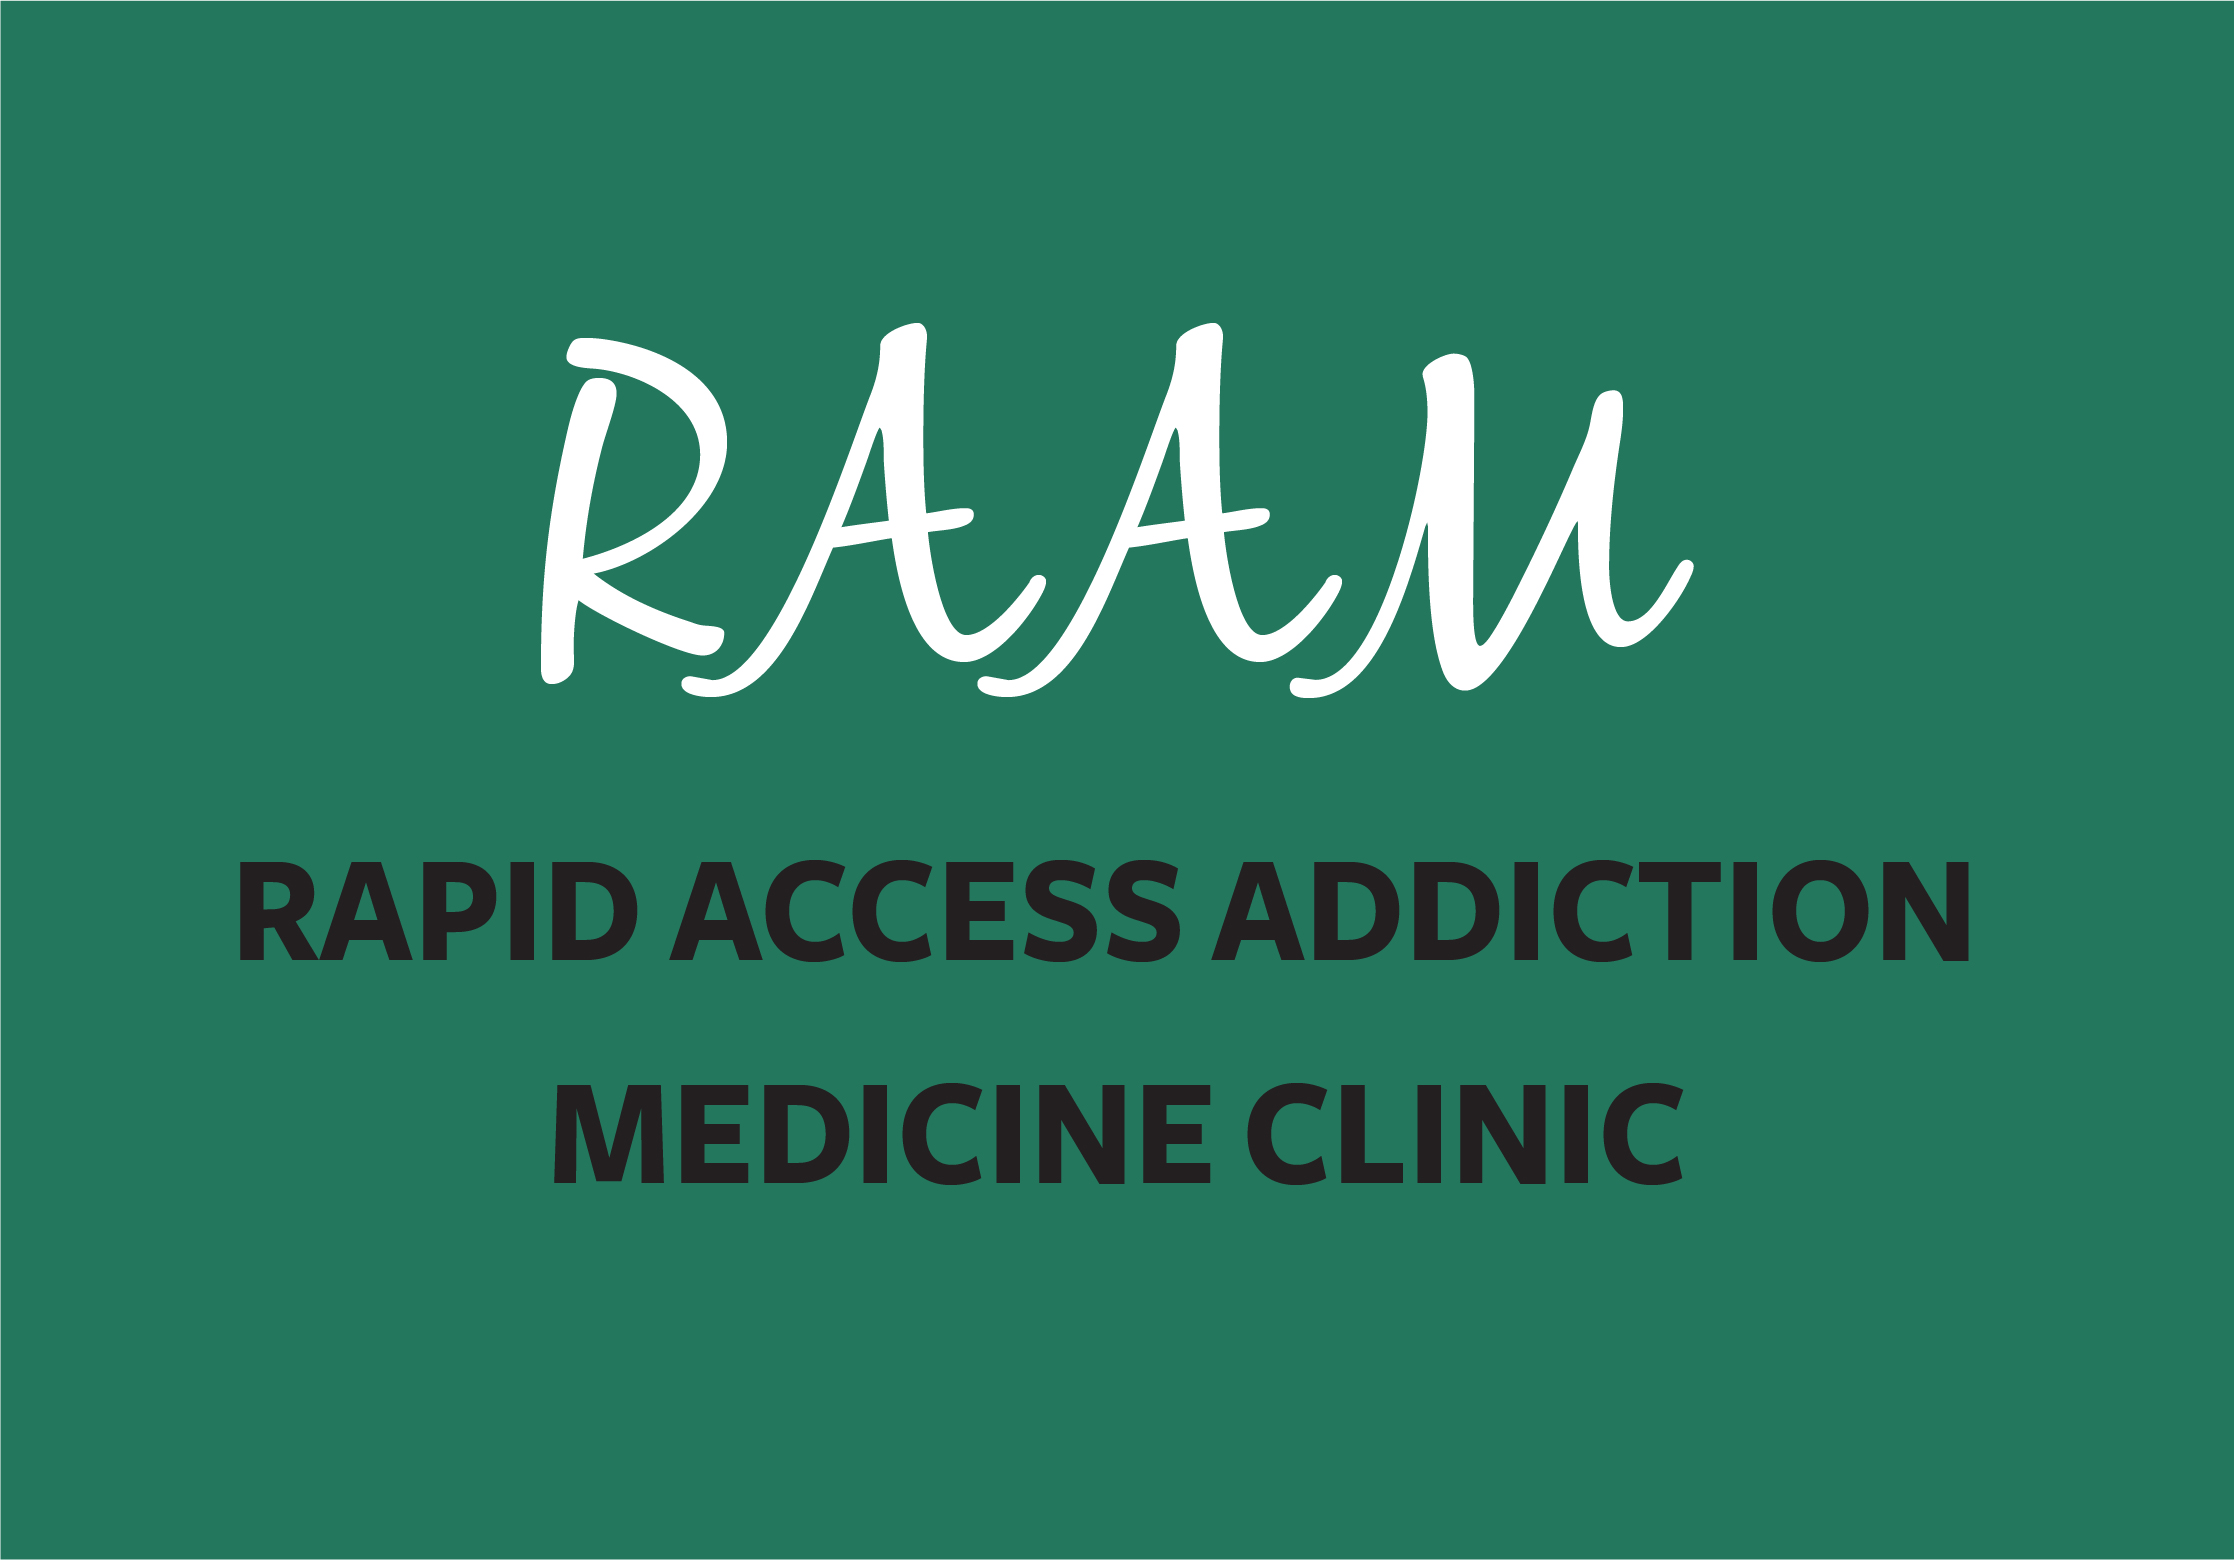 Link to the Rapid Access Addiction Medicine Clinic program page